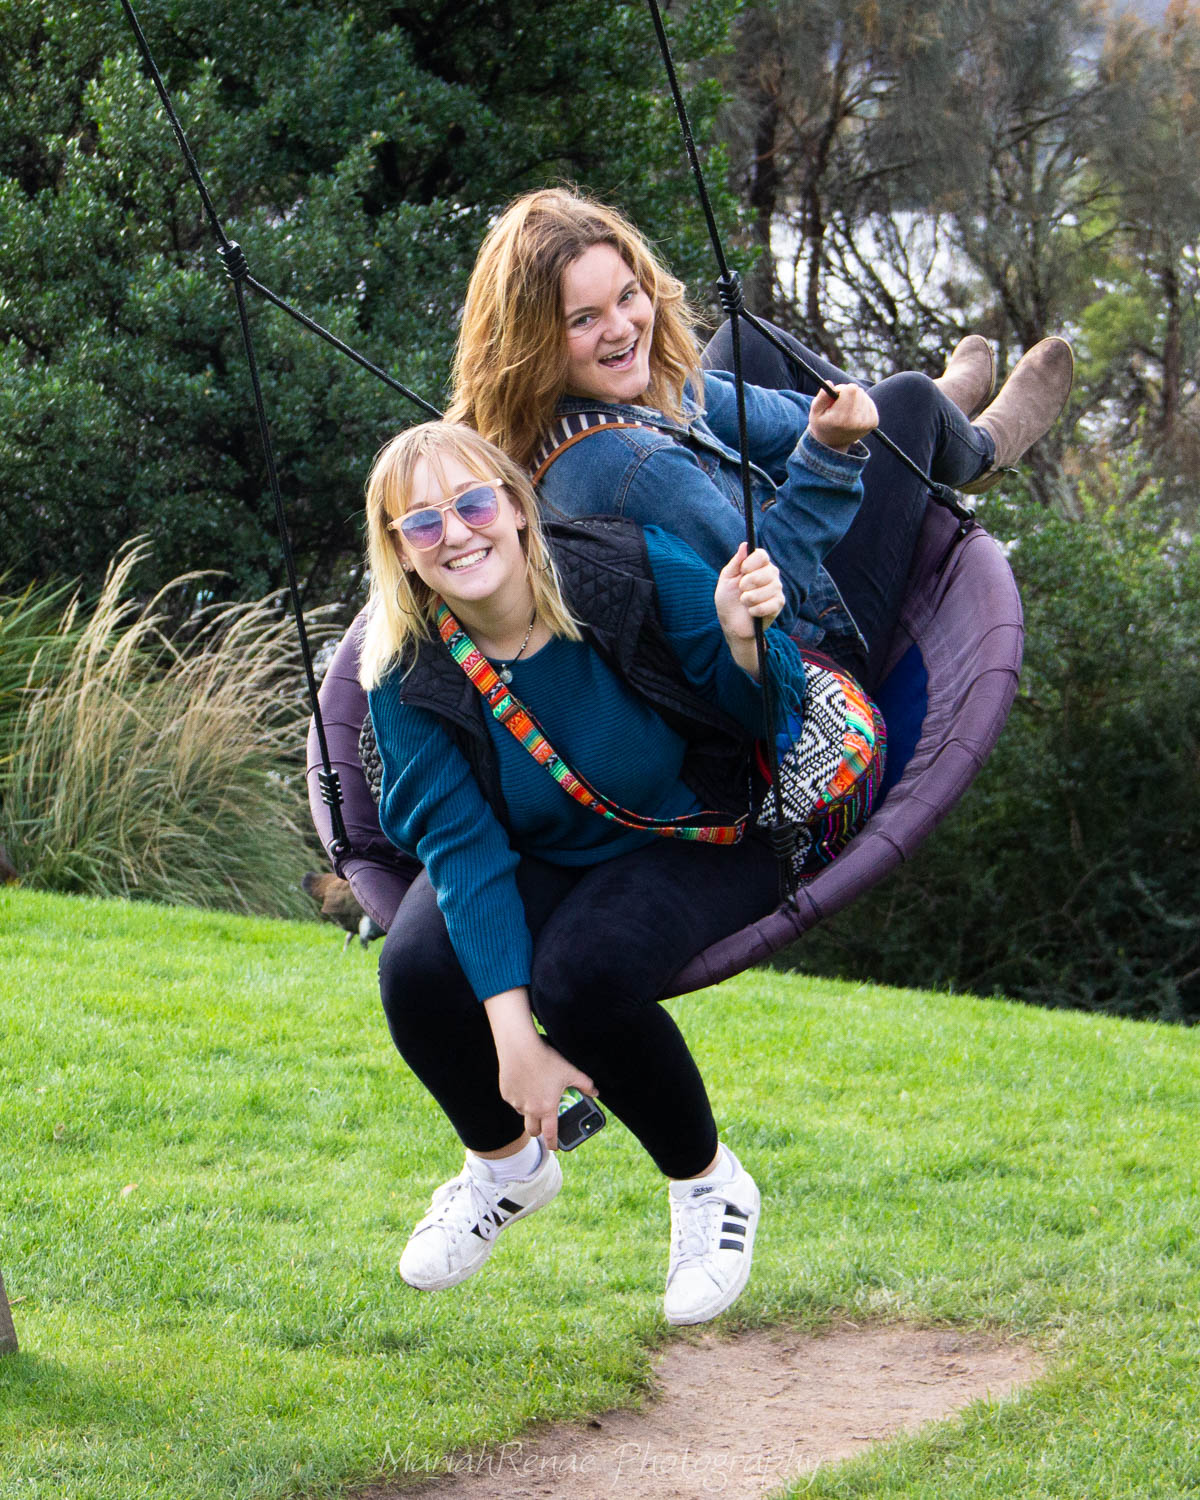 Yes, its true. They do have a swing set at MONA.